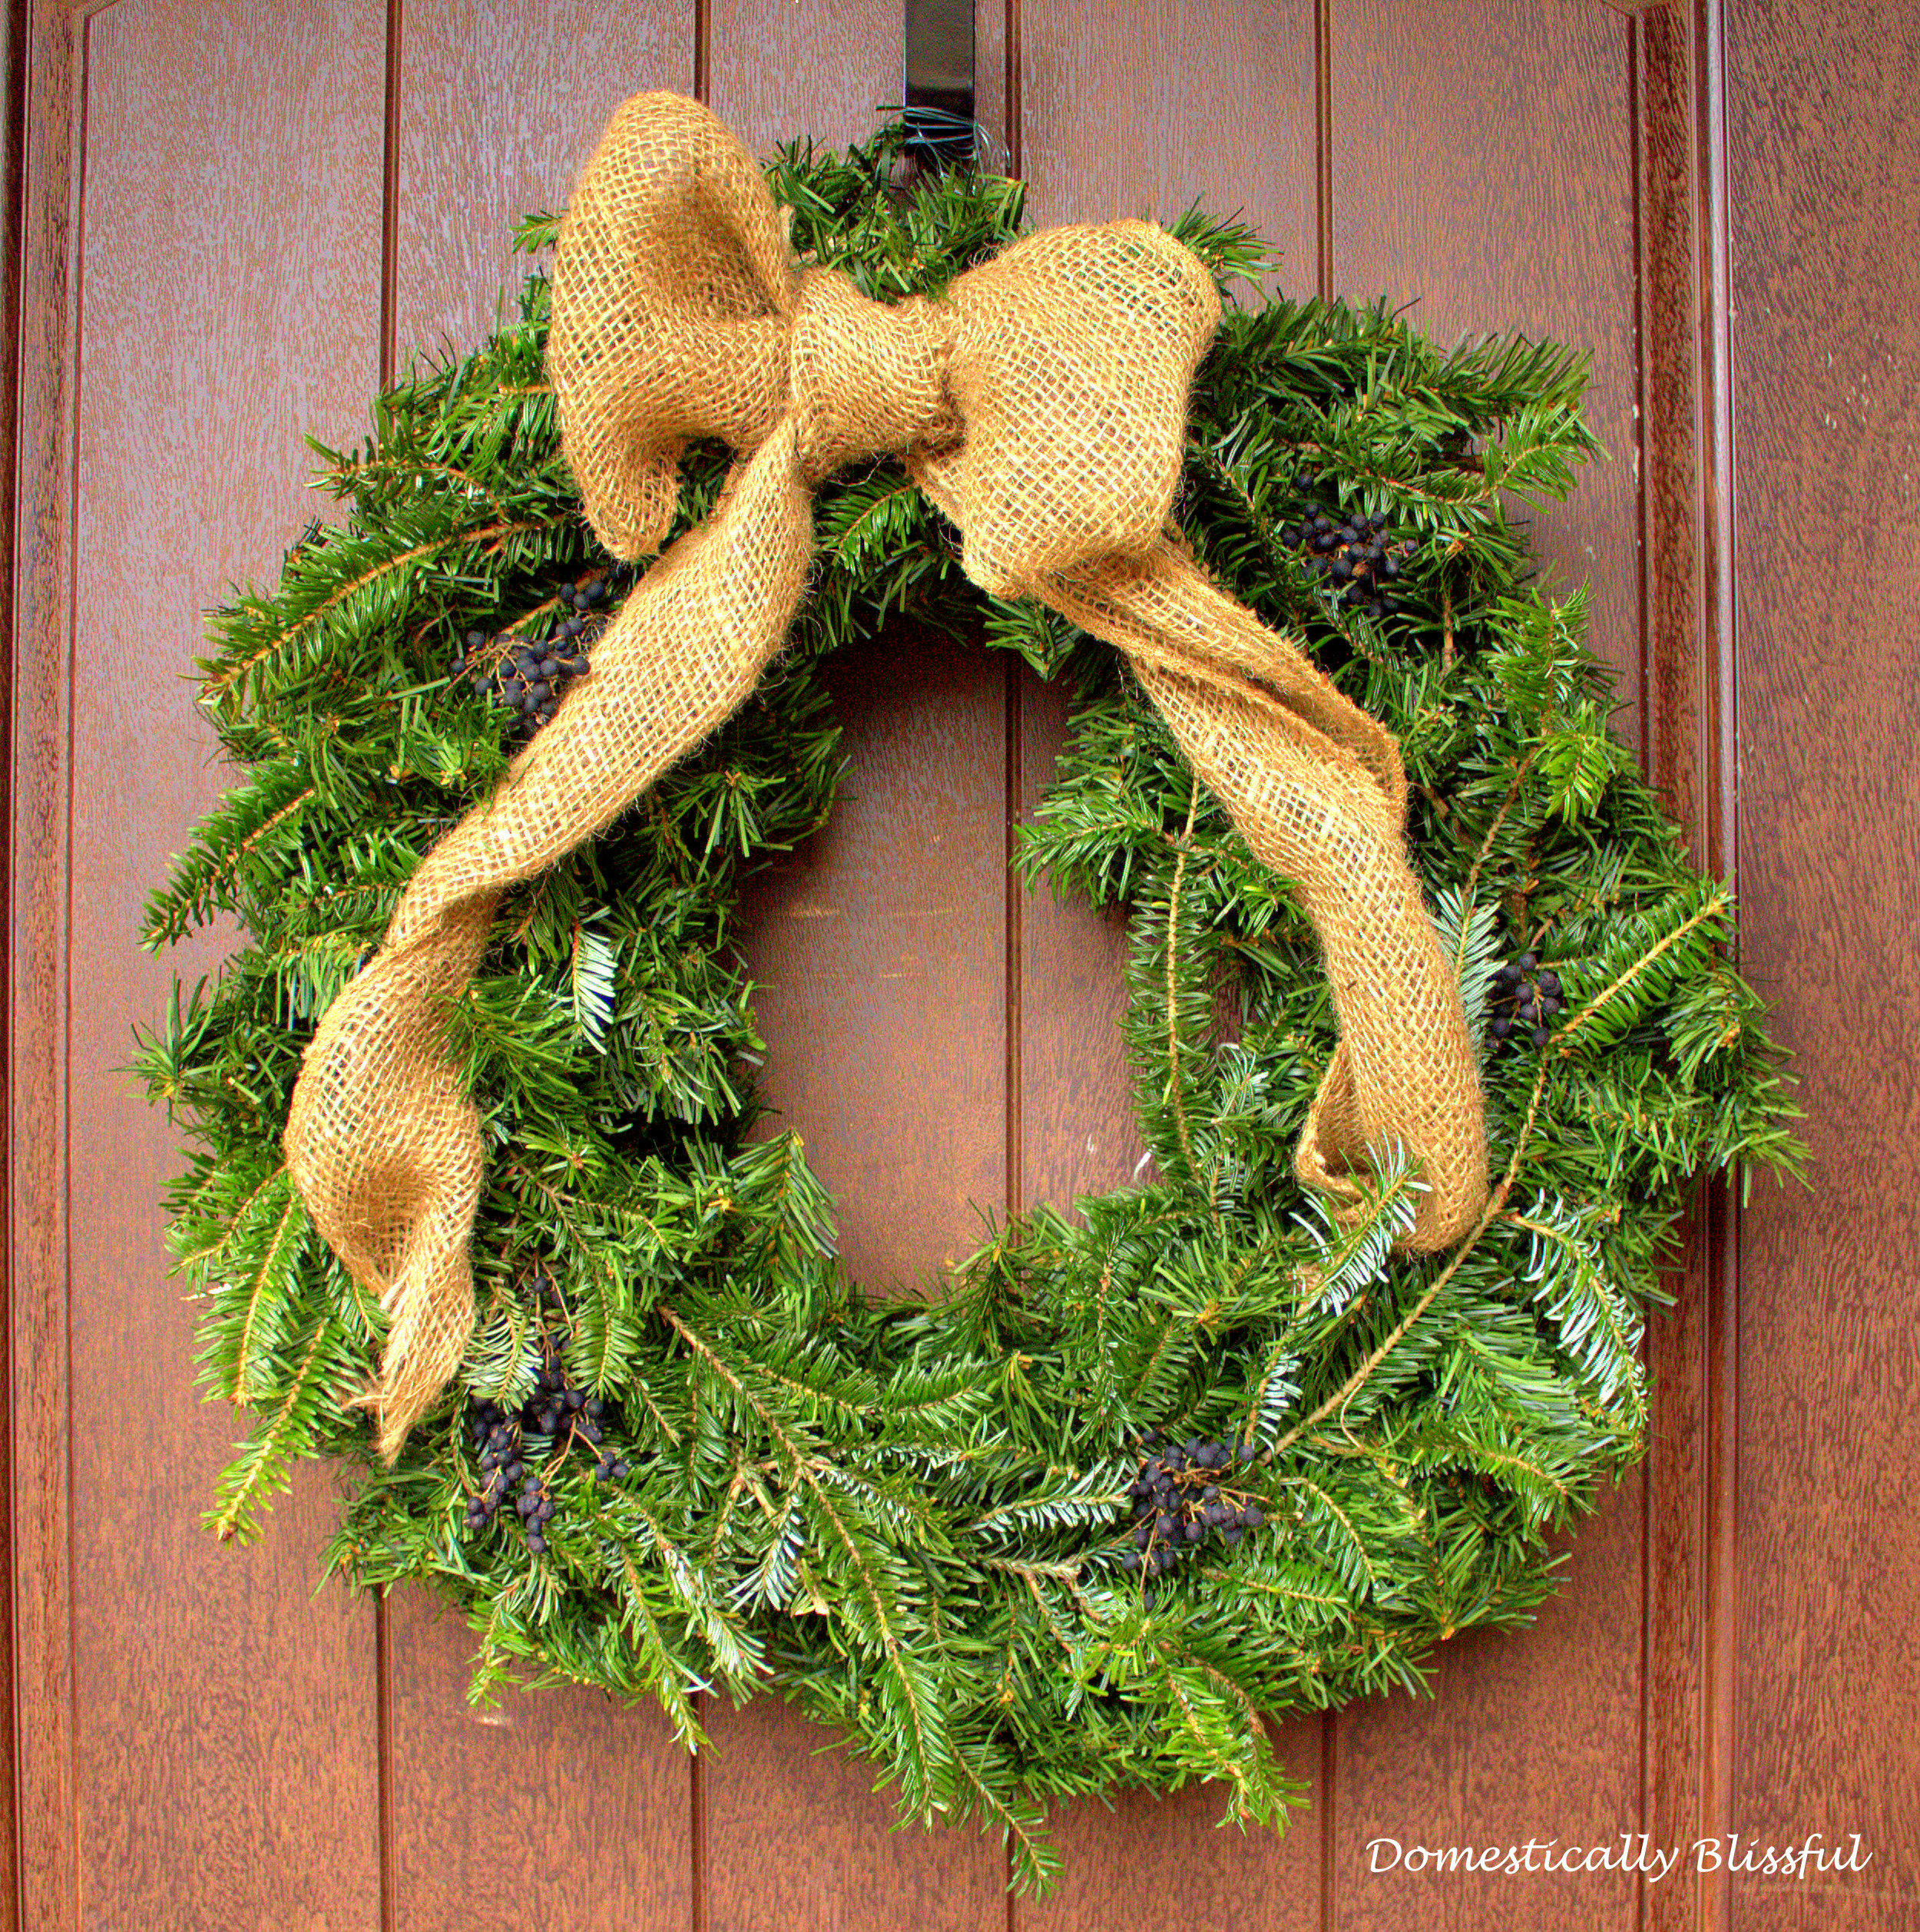 Transformed Artificial Christmas Wreath